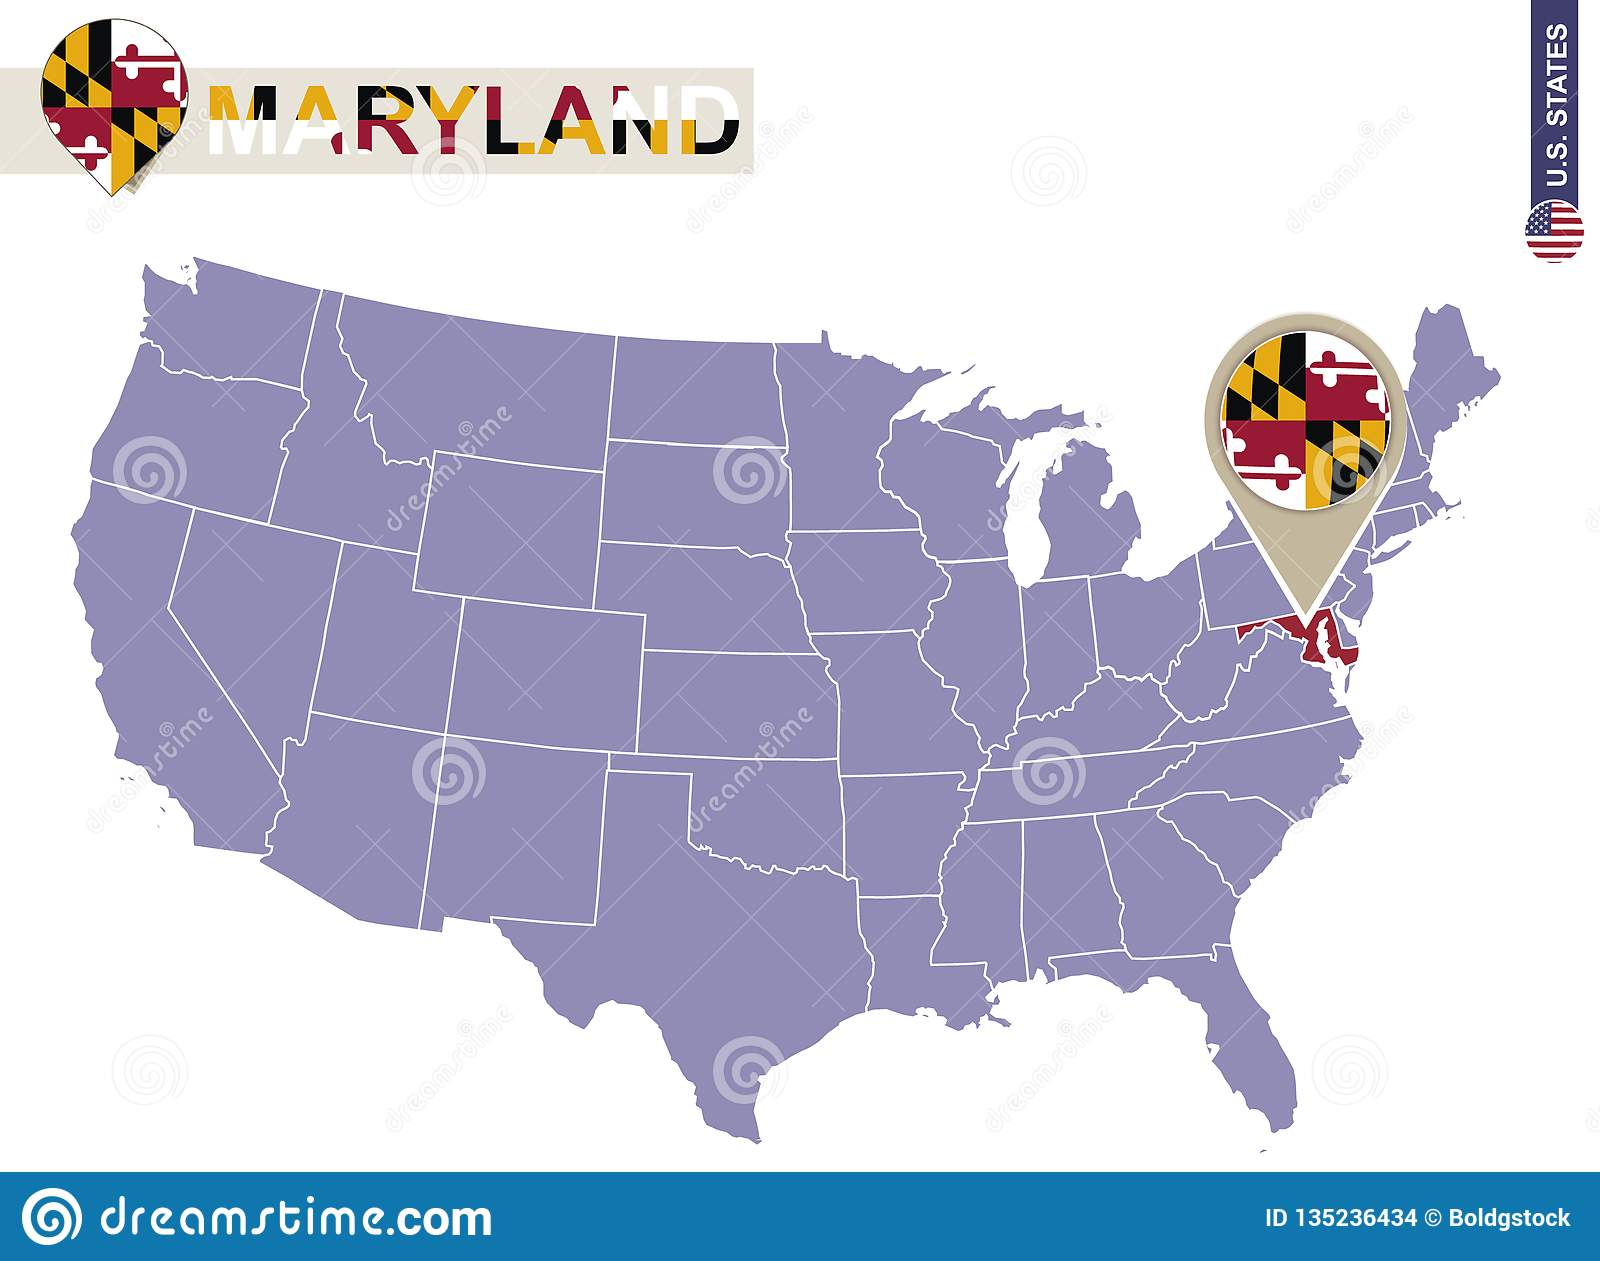 Maryland On Usa Map.Maryland State On Usa Map Maryland Flag And Map Stock Vector